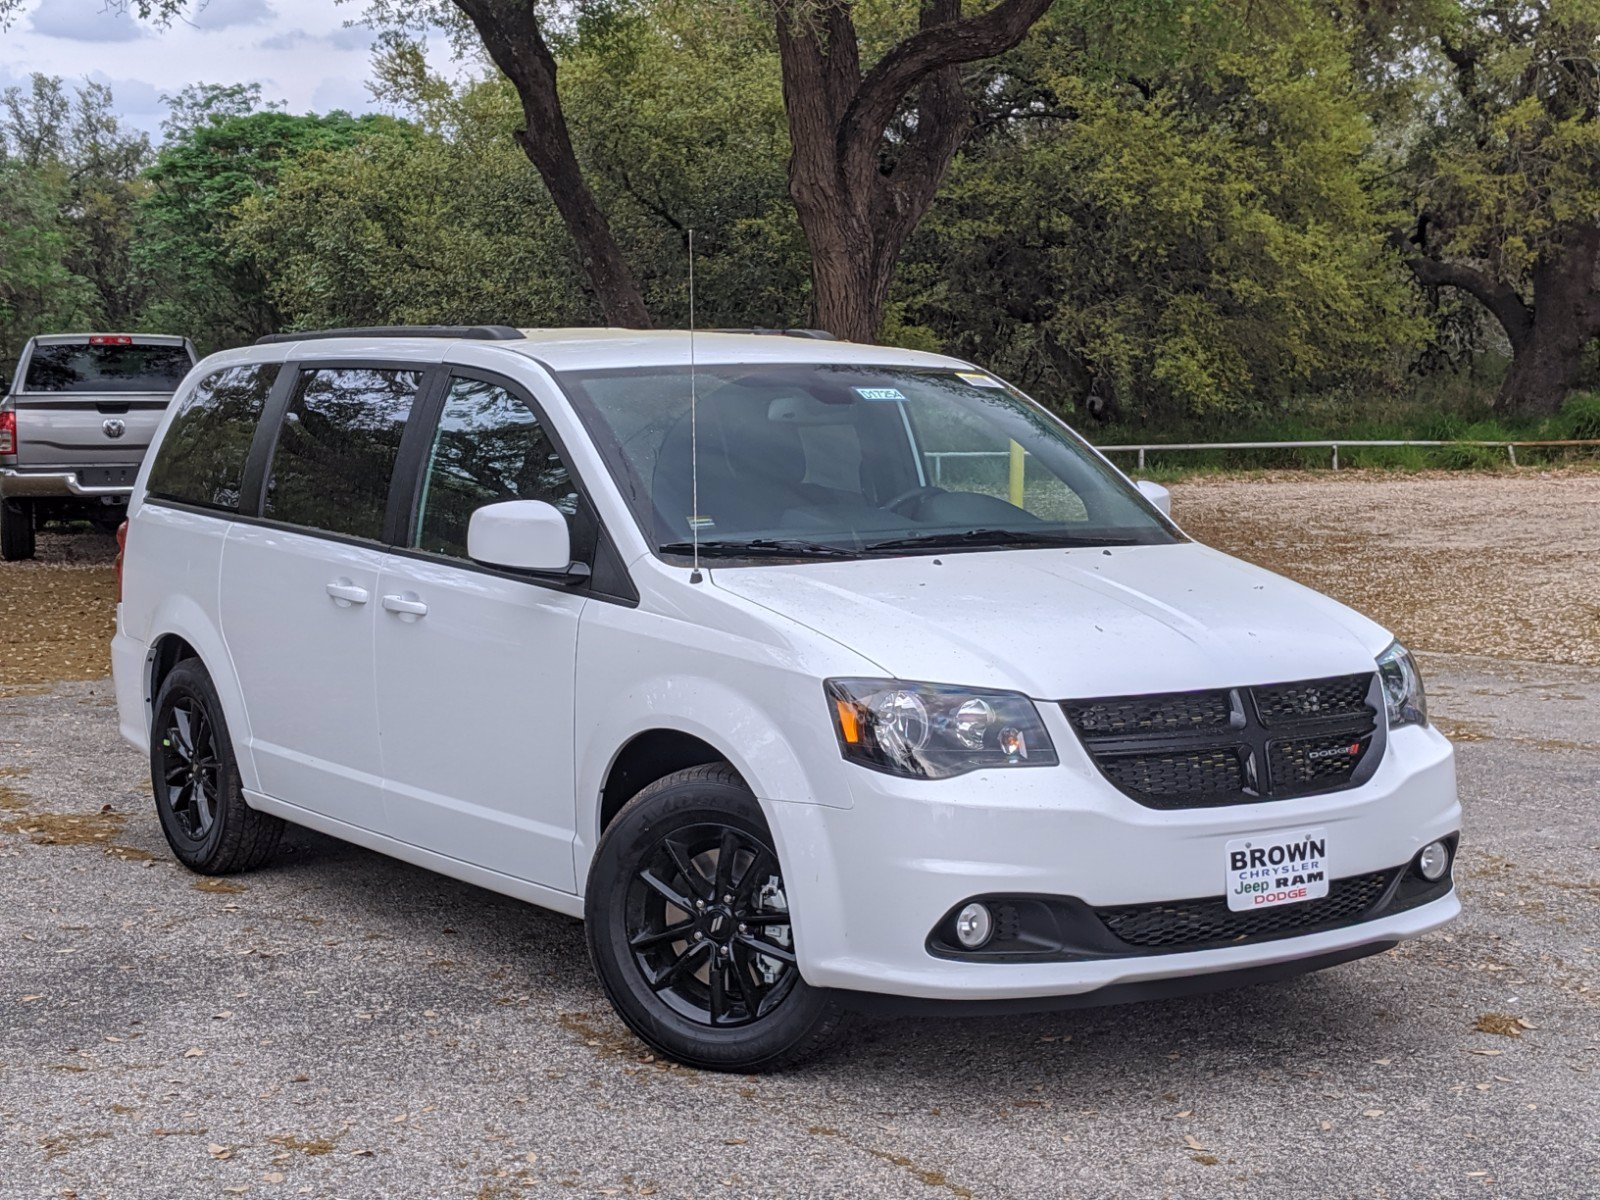 new 2020 dodge grand caravan se plus mini-van, passenger